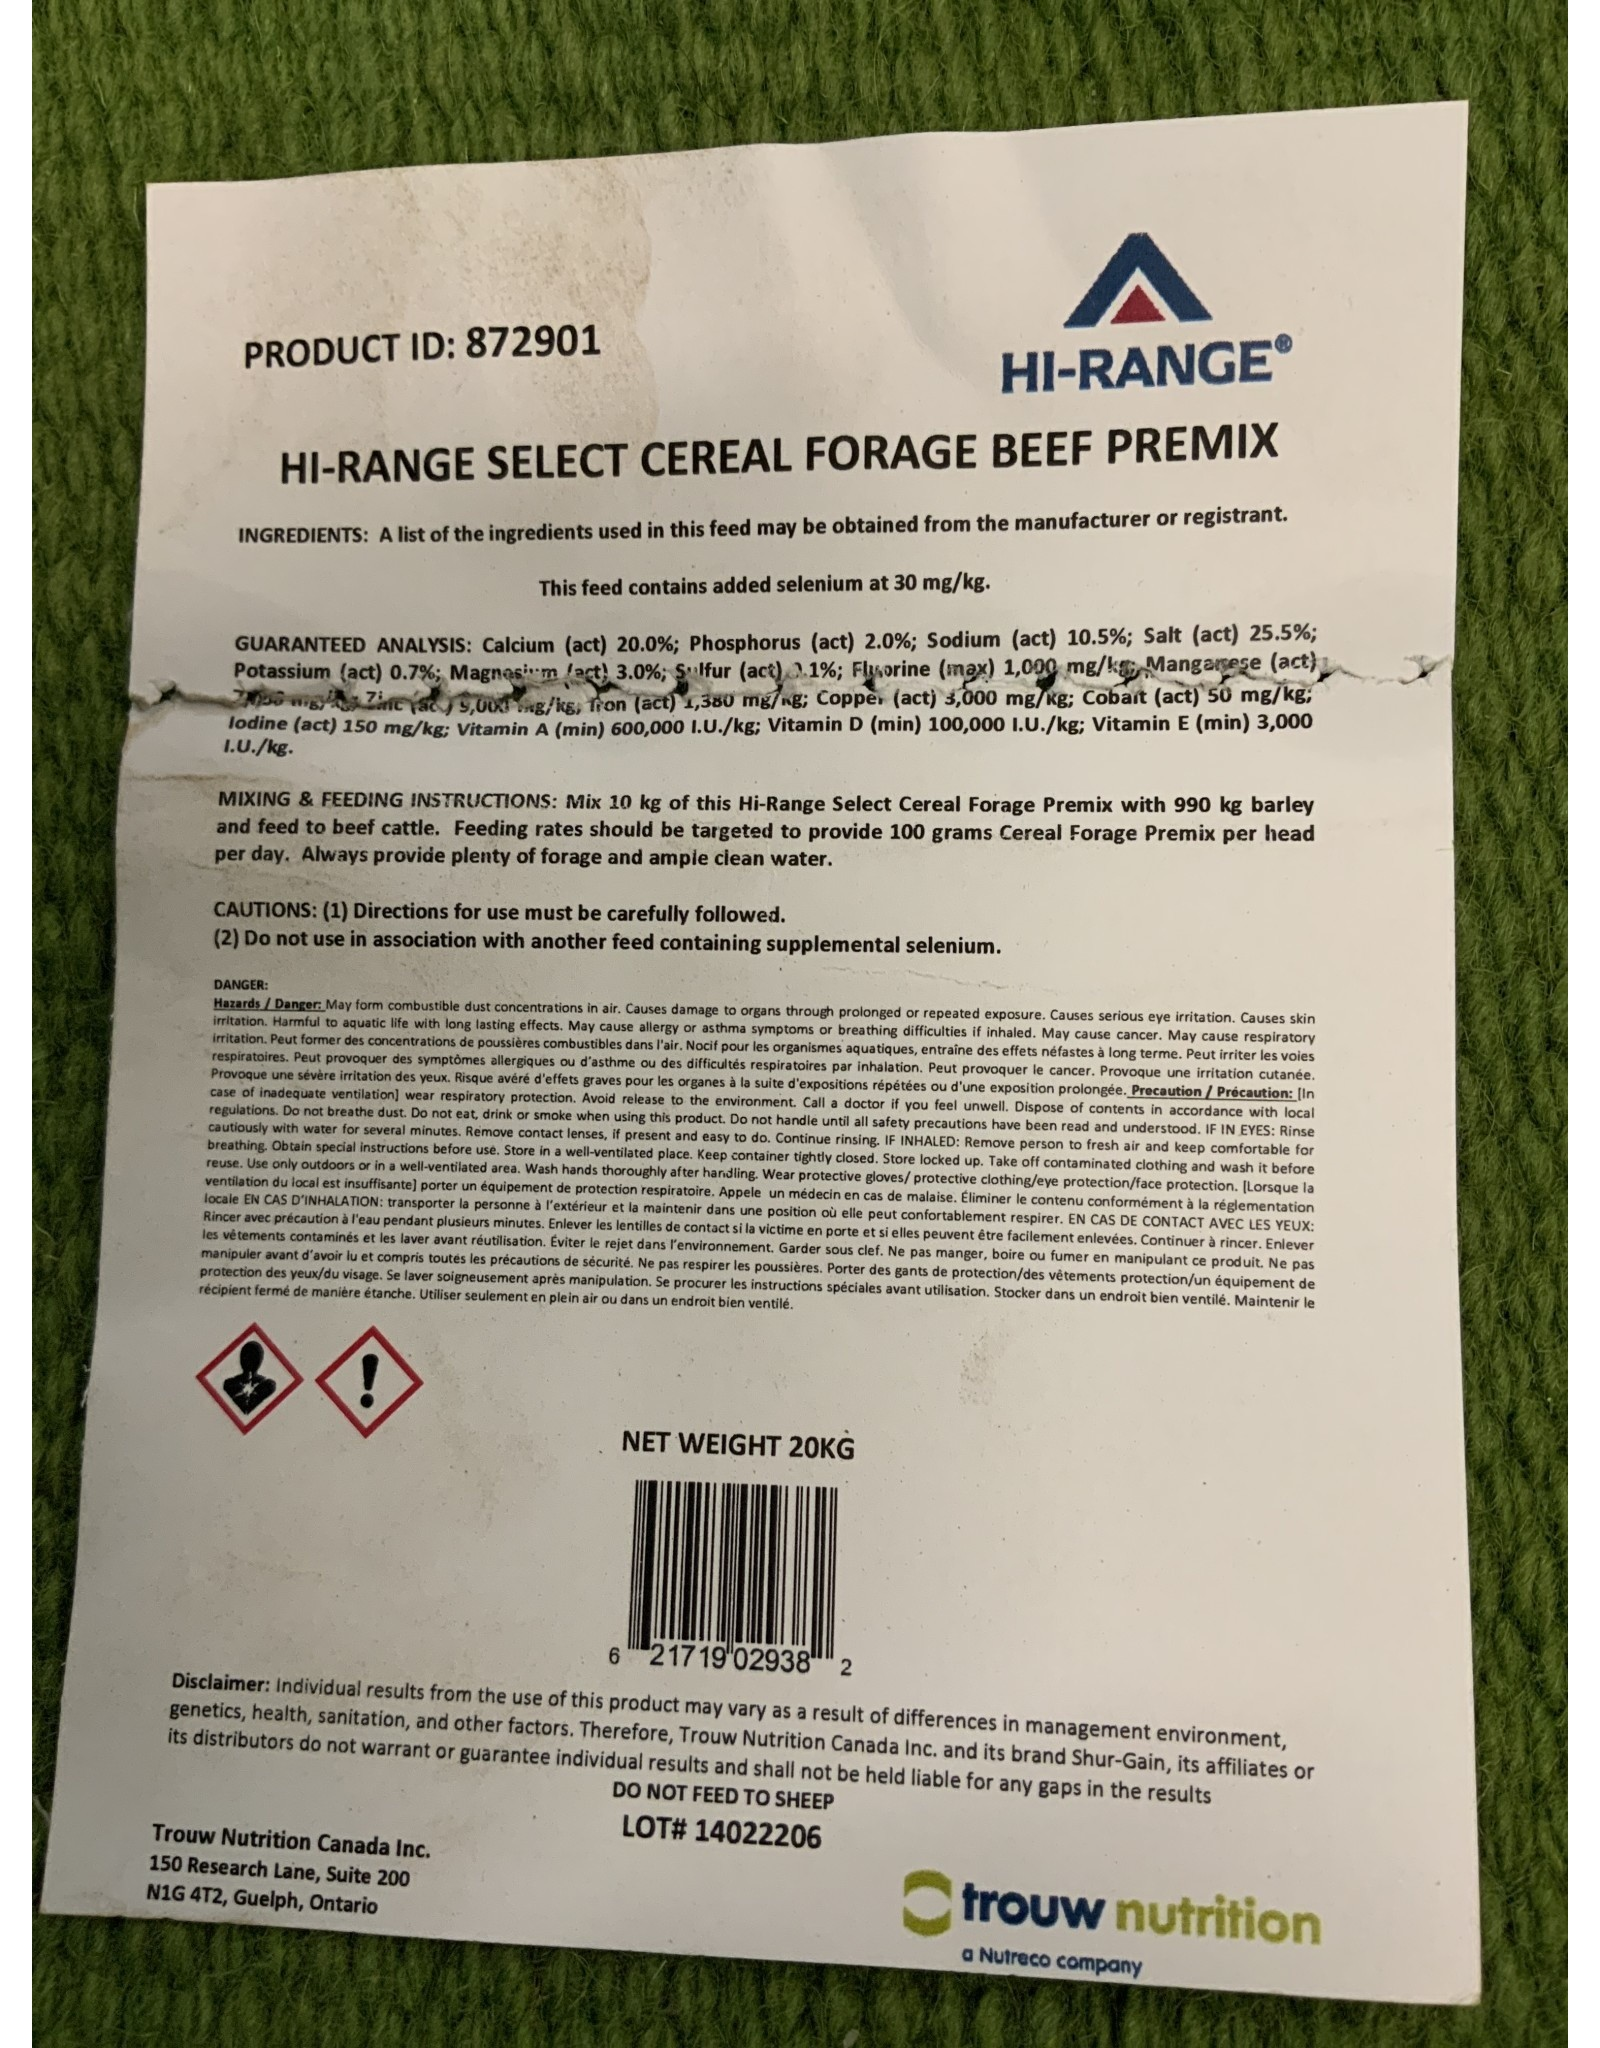 Cattle Mineral (Loose) All Year Quality Mineral * HI-RANGE FORAGE BF MIN PLN Non-medicated so you can use and take animals off anytime with no risk *perfect all round bag mineral * 873941  (872901- New Product Number)